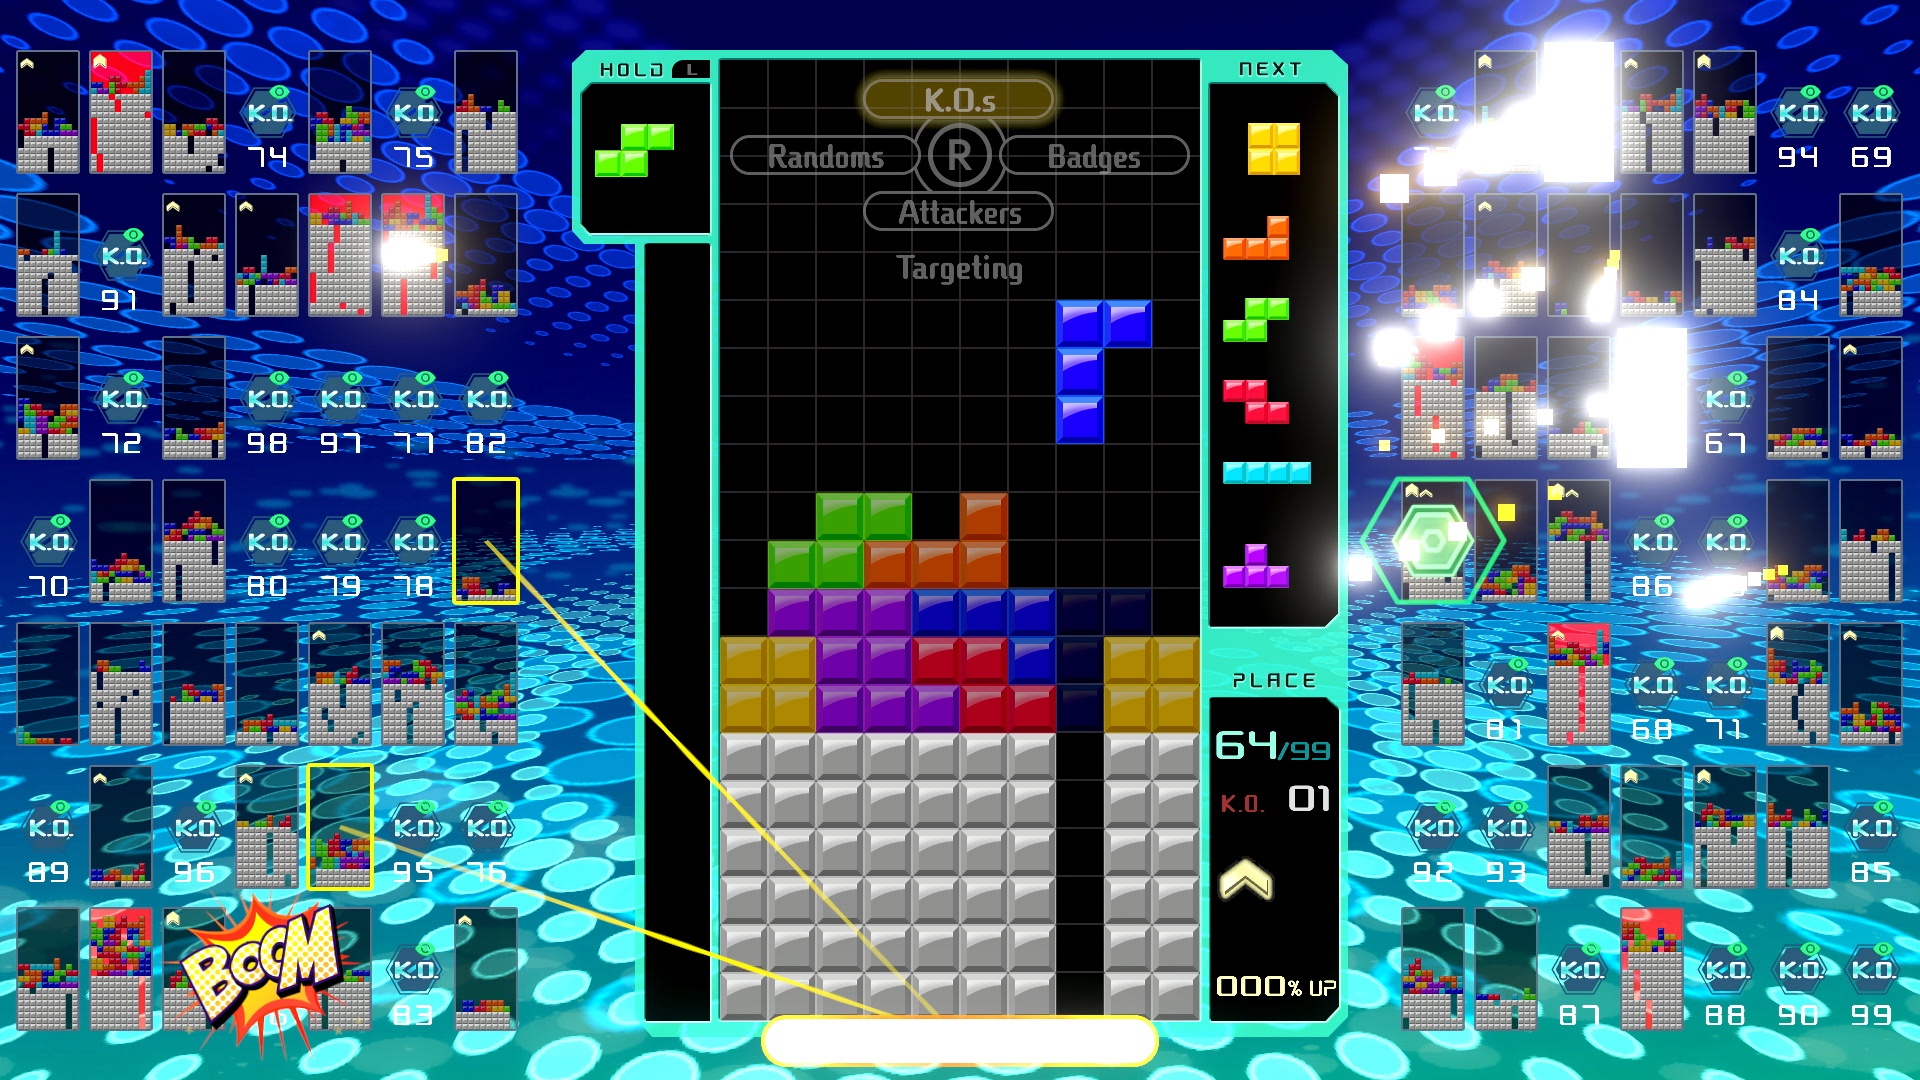 Tetris tips from a seven-time world champion